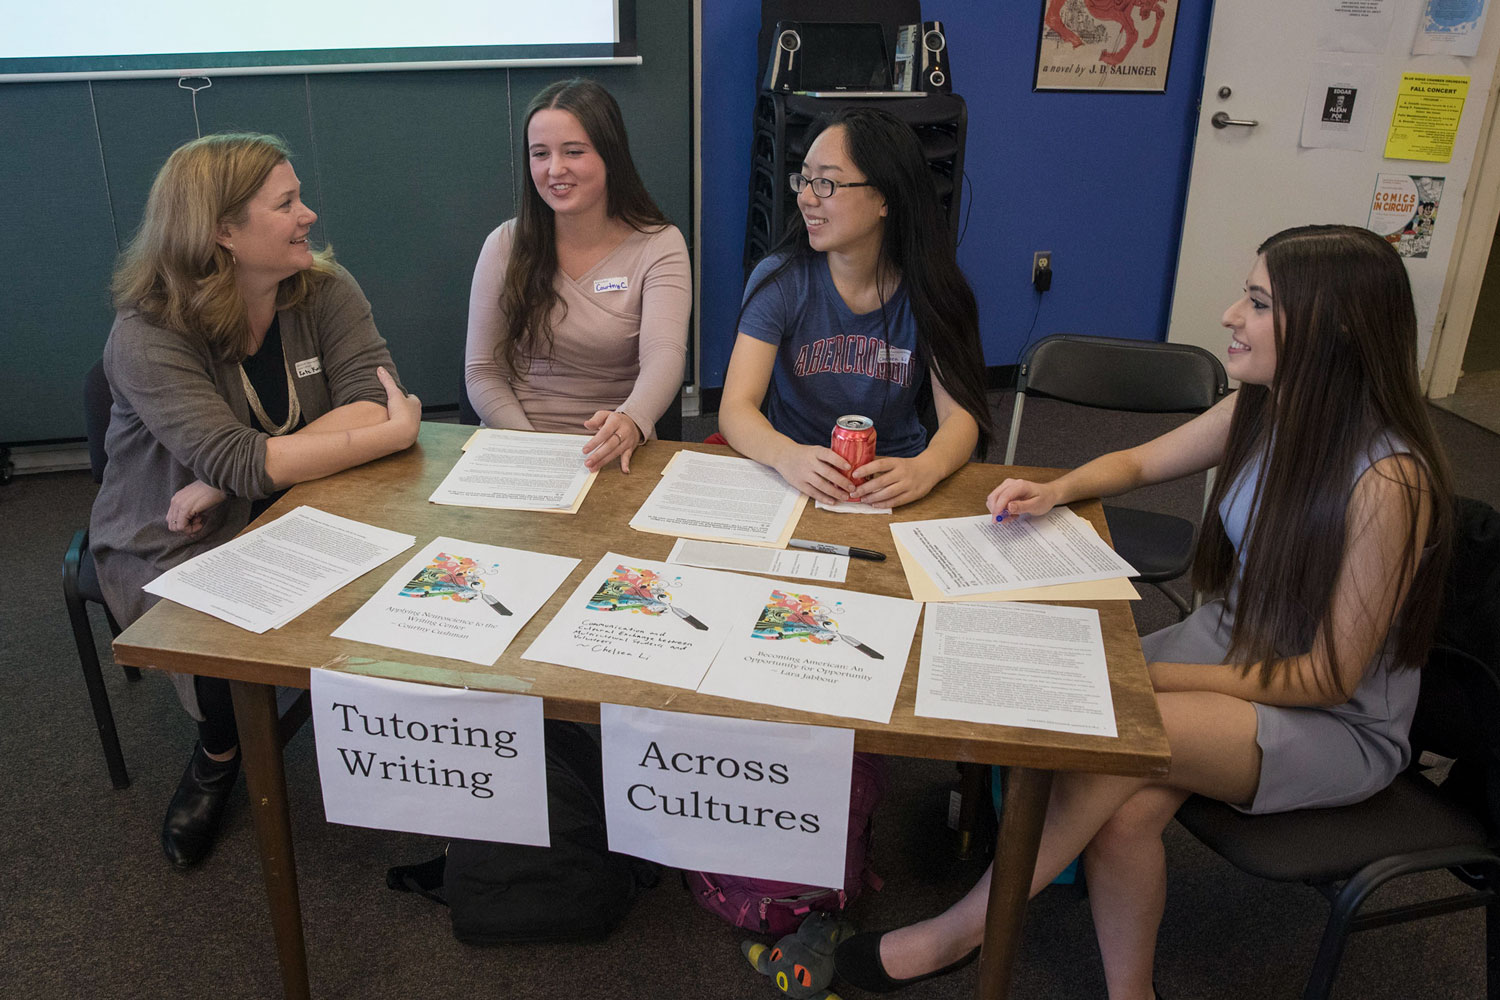 Kate Kostelnik, left, who teaches in the Academic and Professional Writing Program, brought students Courtny Cushman, Chelsea Li and Lara Jabbour to a showcase on community engagement and writing.